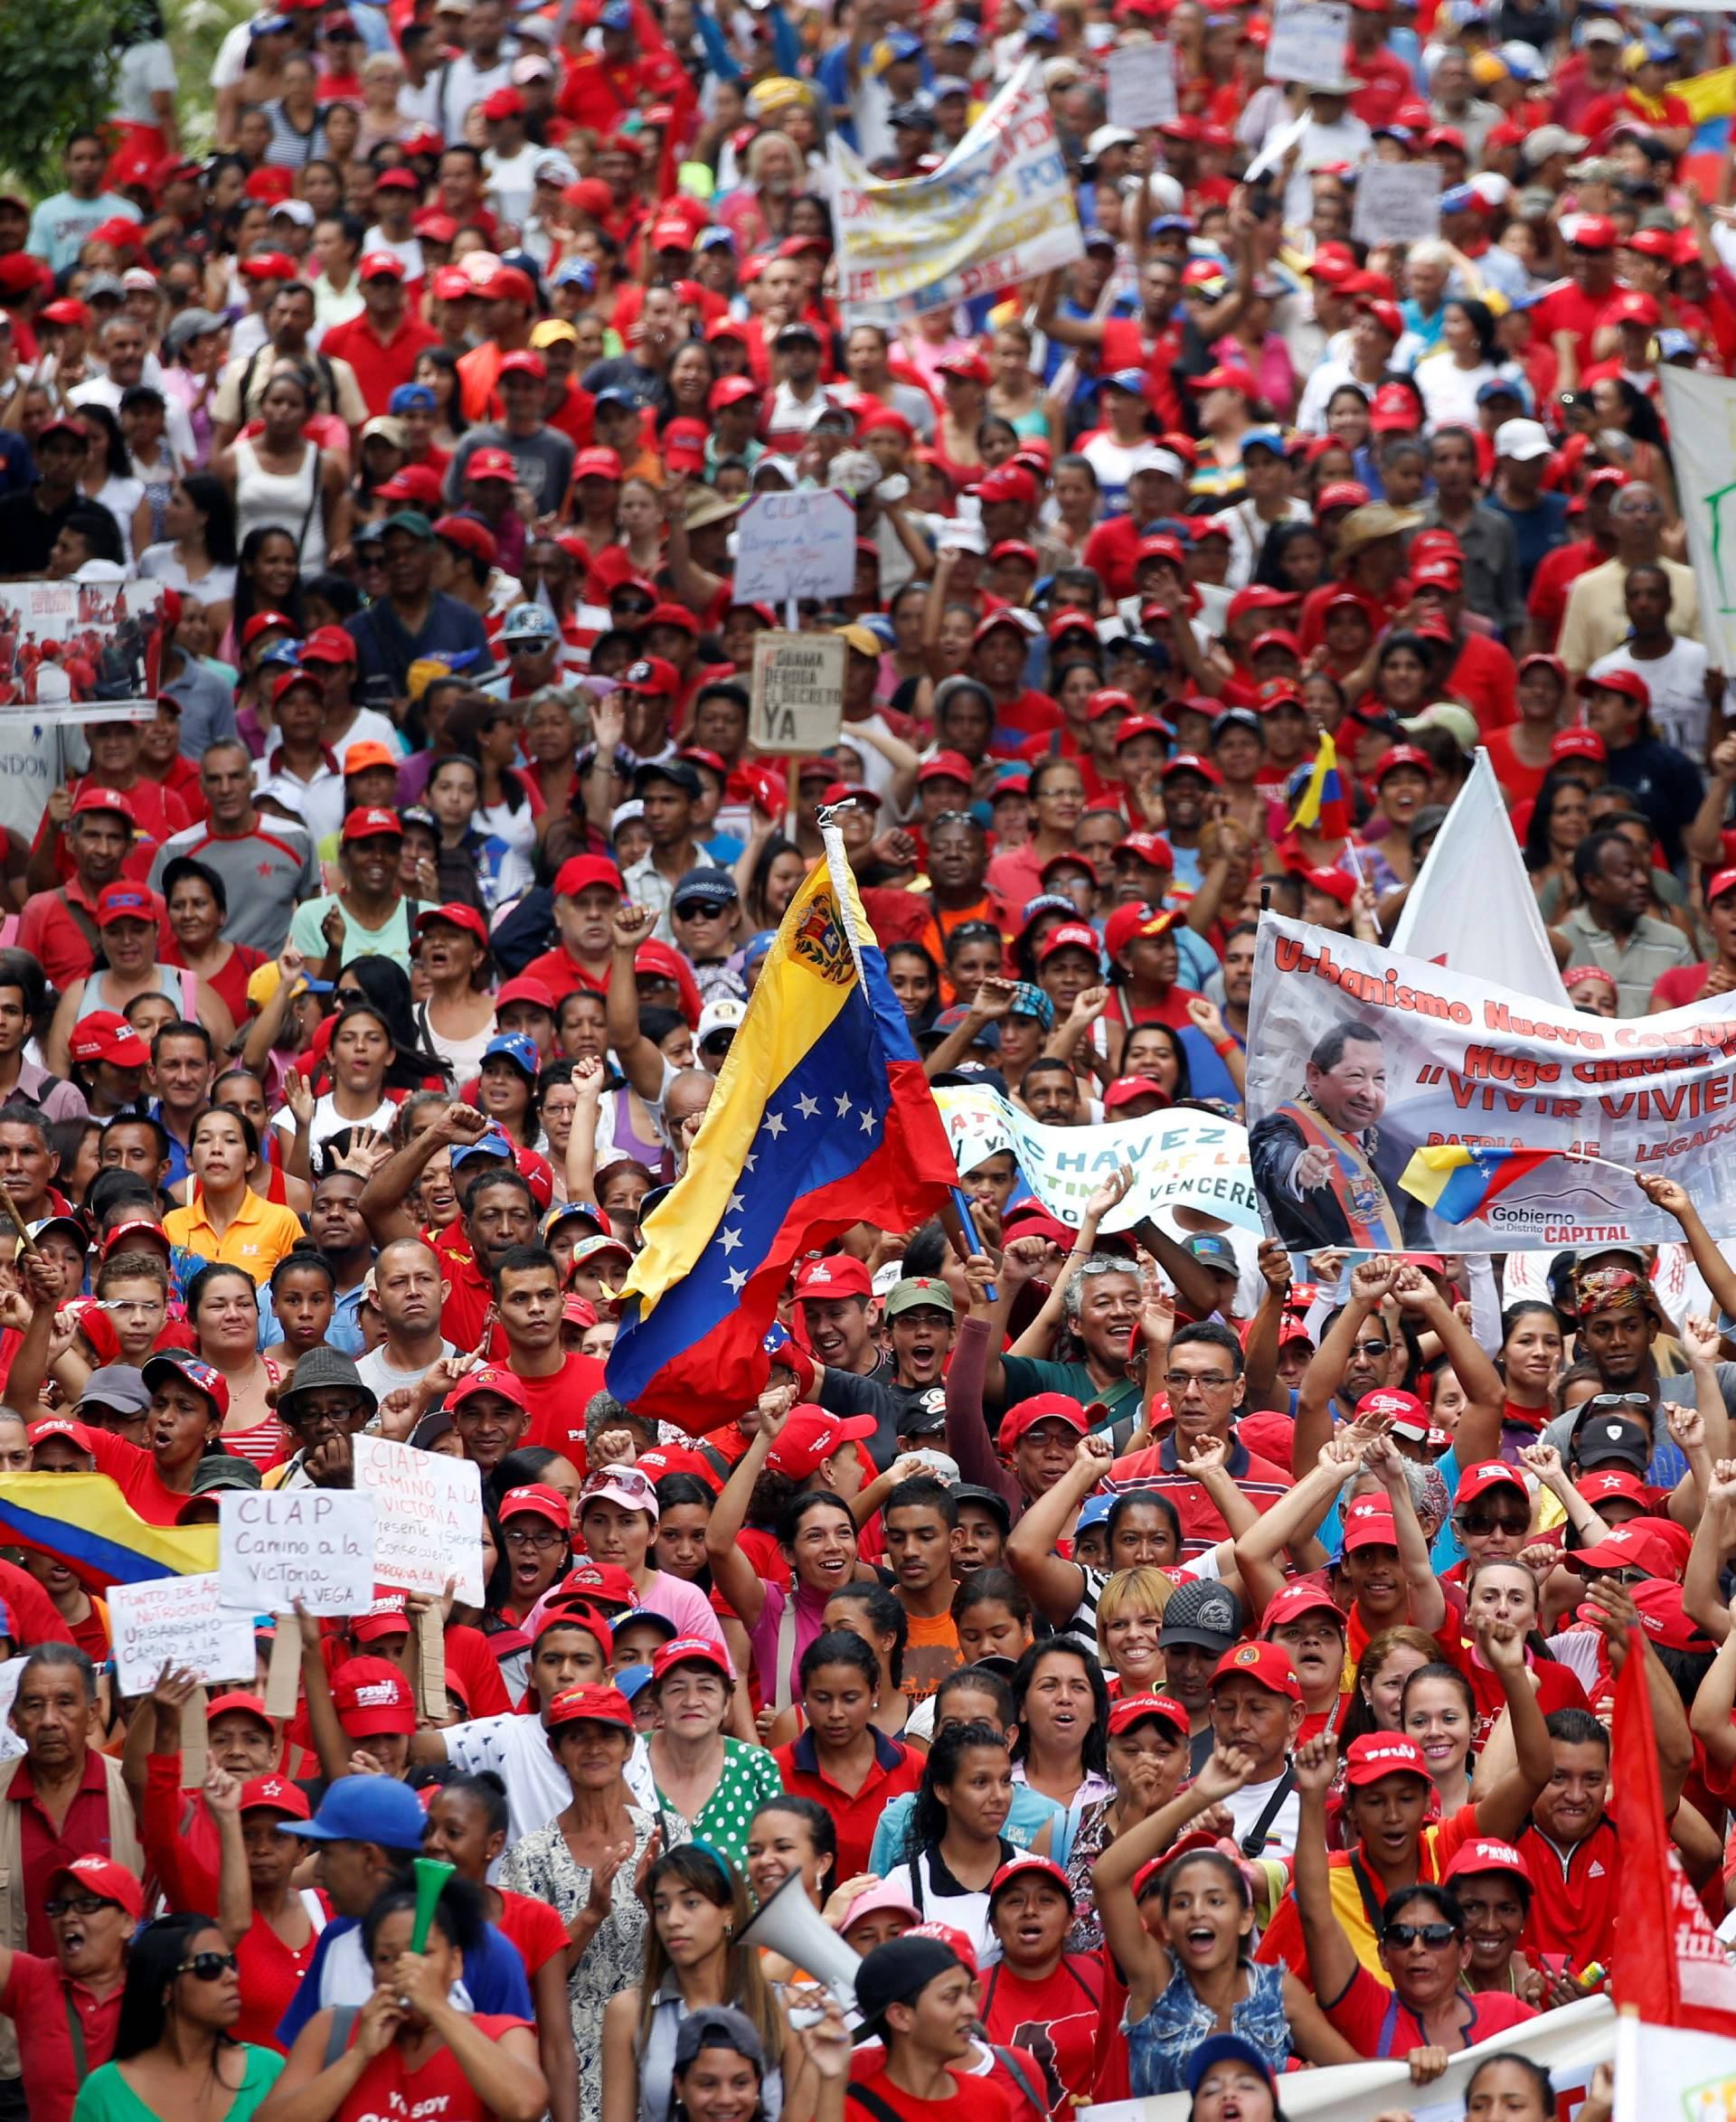 """Supporters of Venezuela's President Nicolas Maduro demonstrate in response to the opposition during so-called """"mother of all marches"""" against Venezuela's President Maduro in Caracas"""